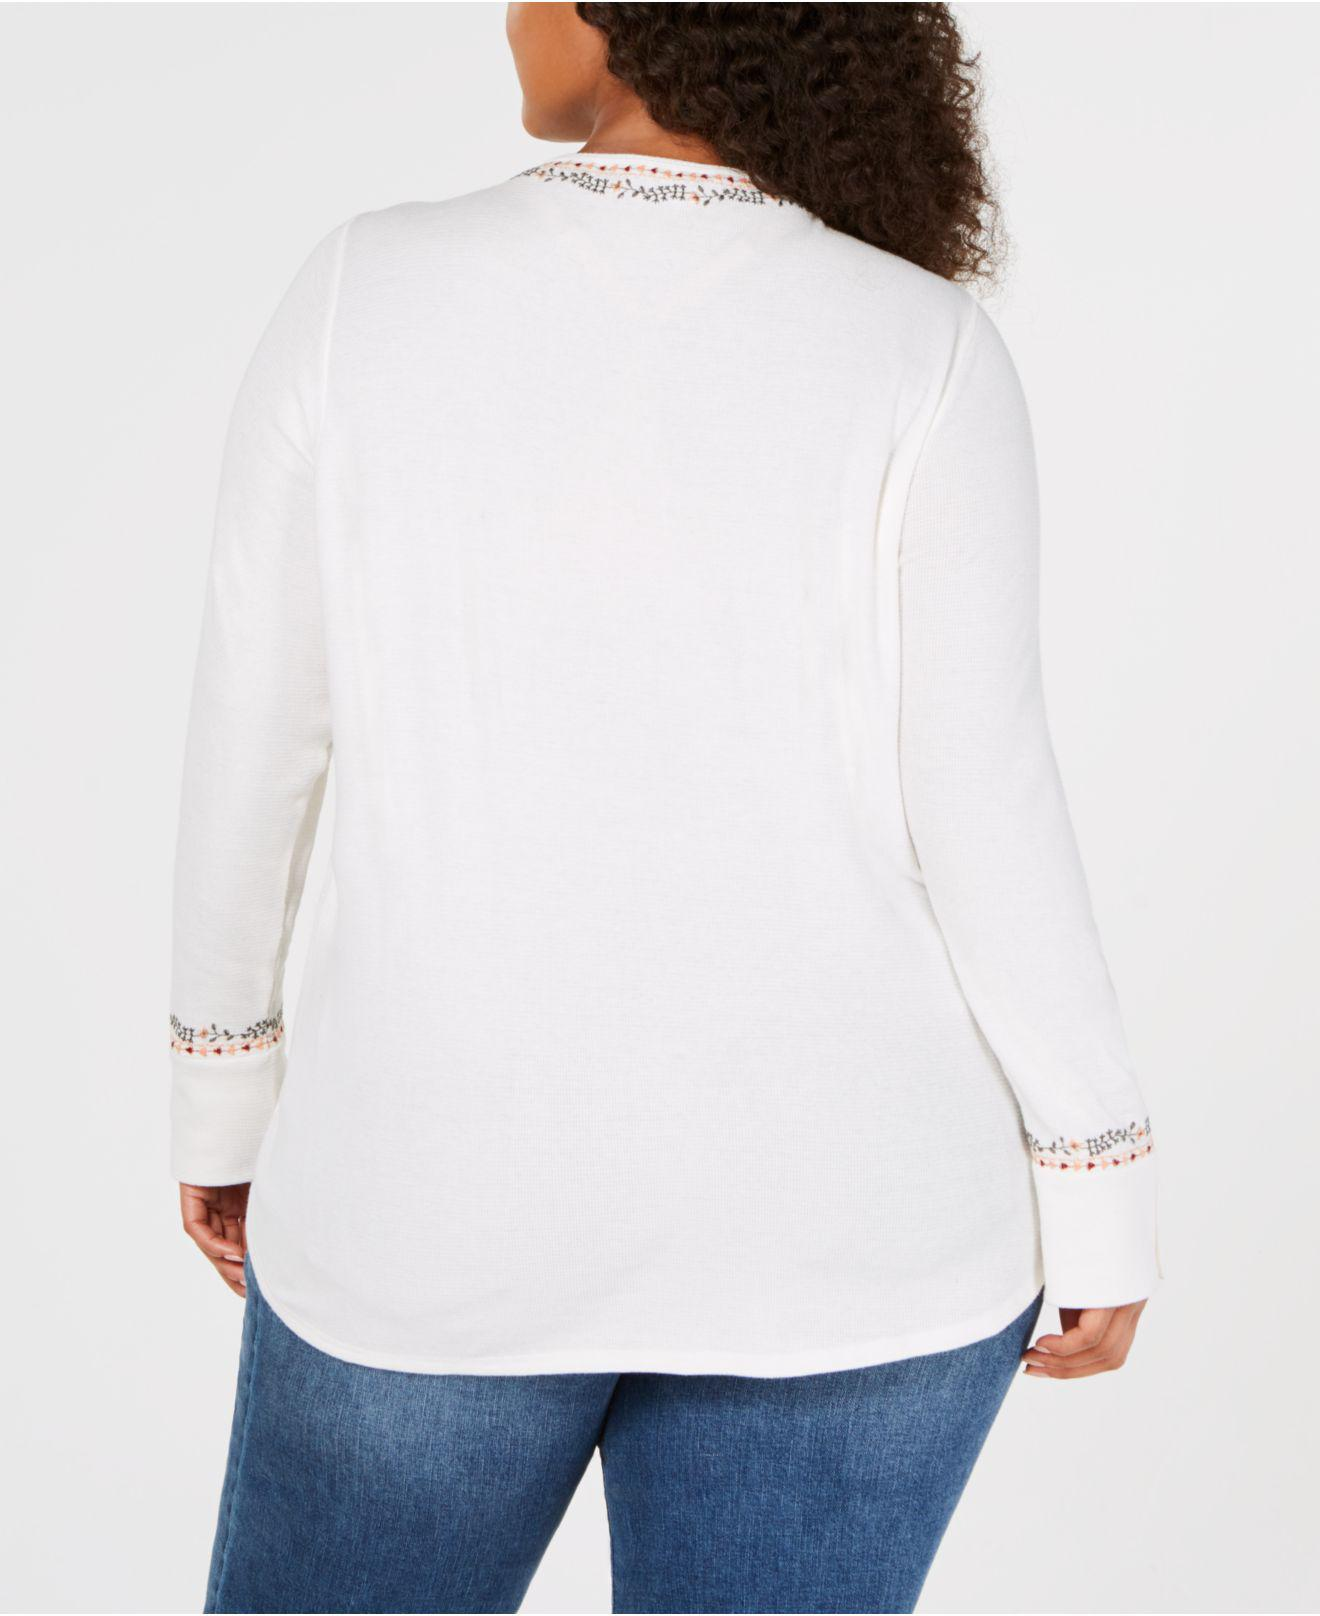 eb81f09fa9057 Lyst - Lucky Brand Trendy Plus Size Cotton Embroidered Henley Top in White